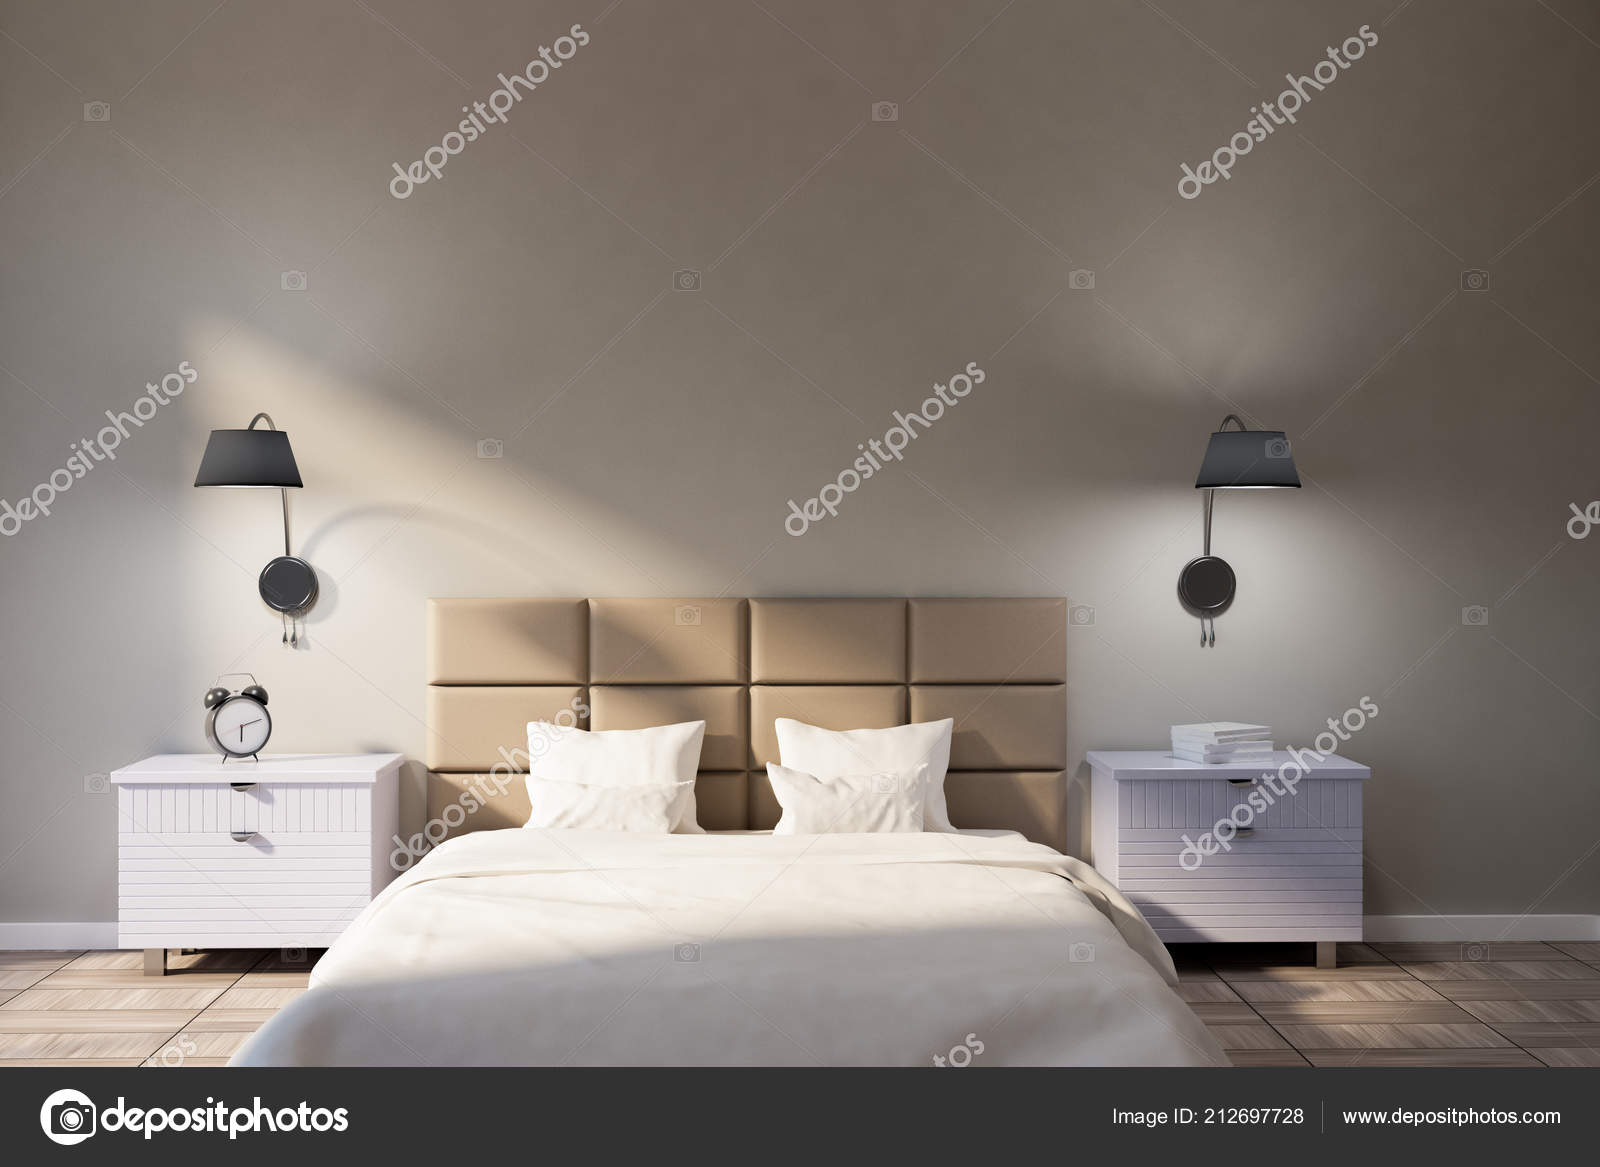 Minimalistic Bedroom Interior Beige Walls Wooden Tile Floor